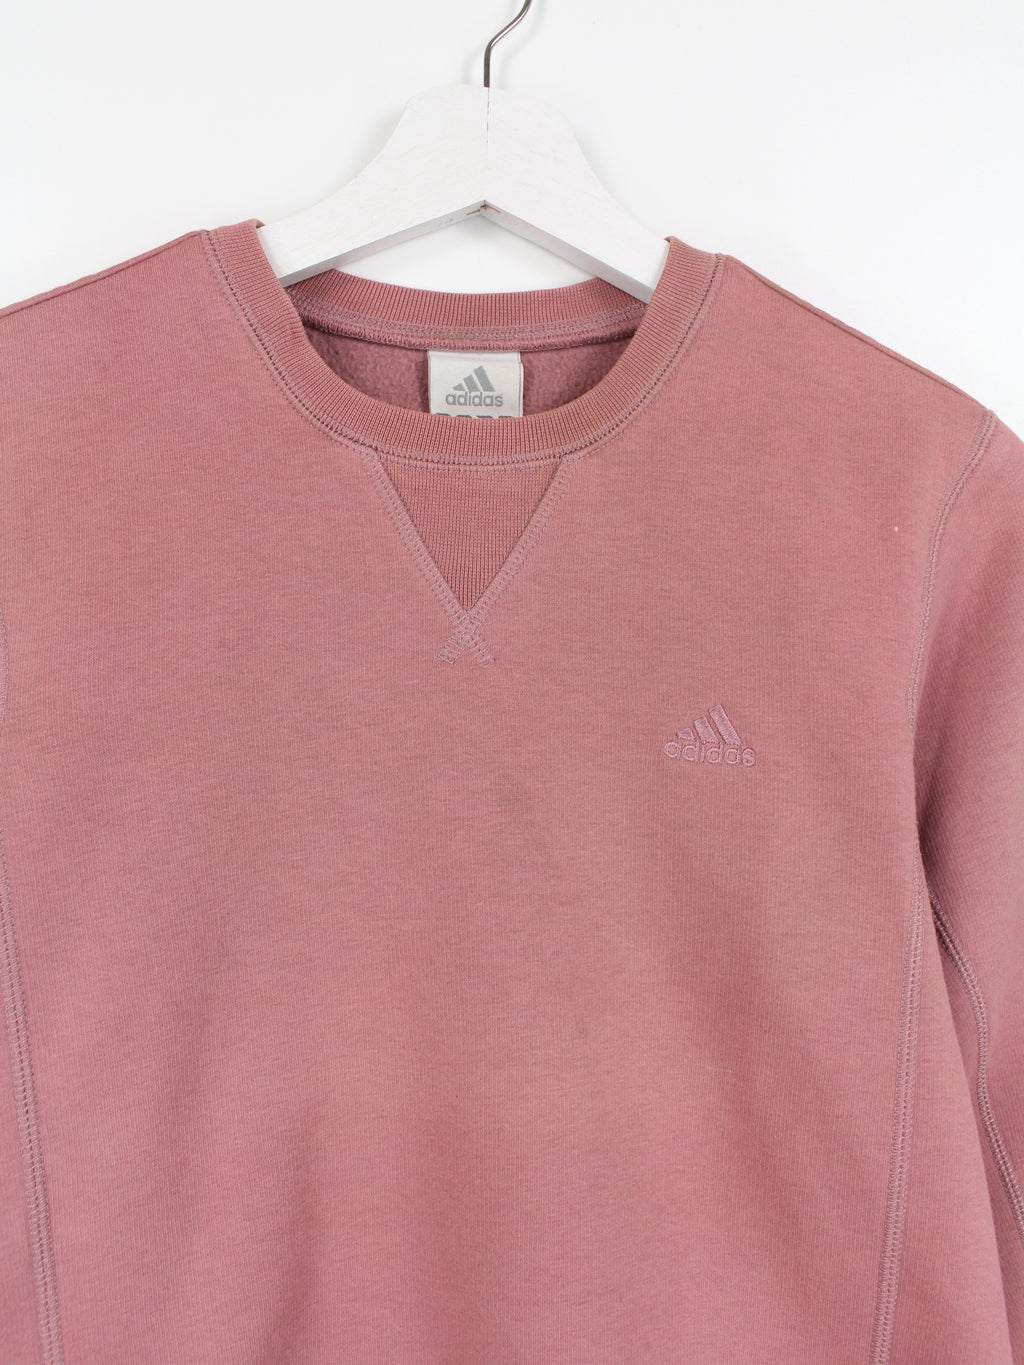 Hugo Boss Sweater Rot XL